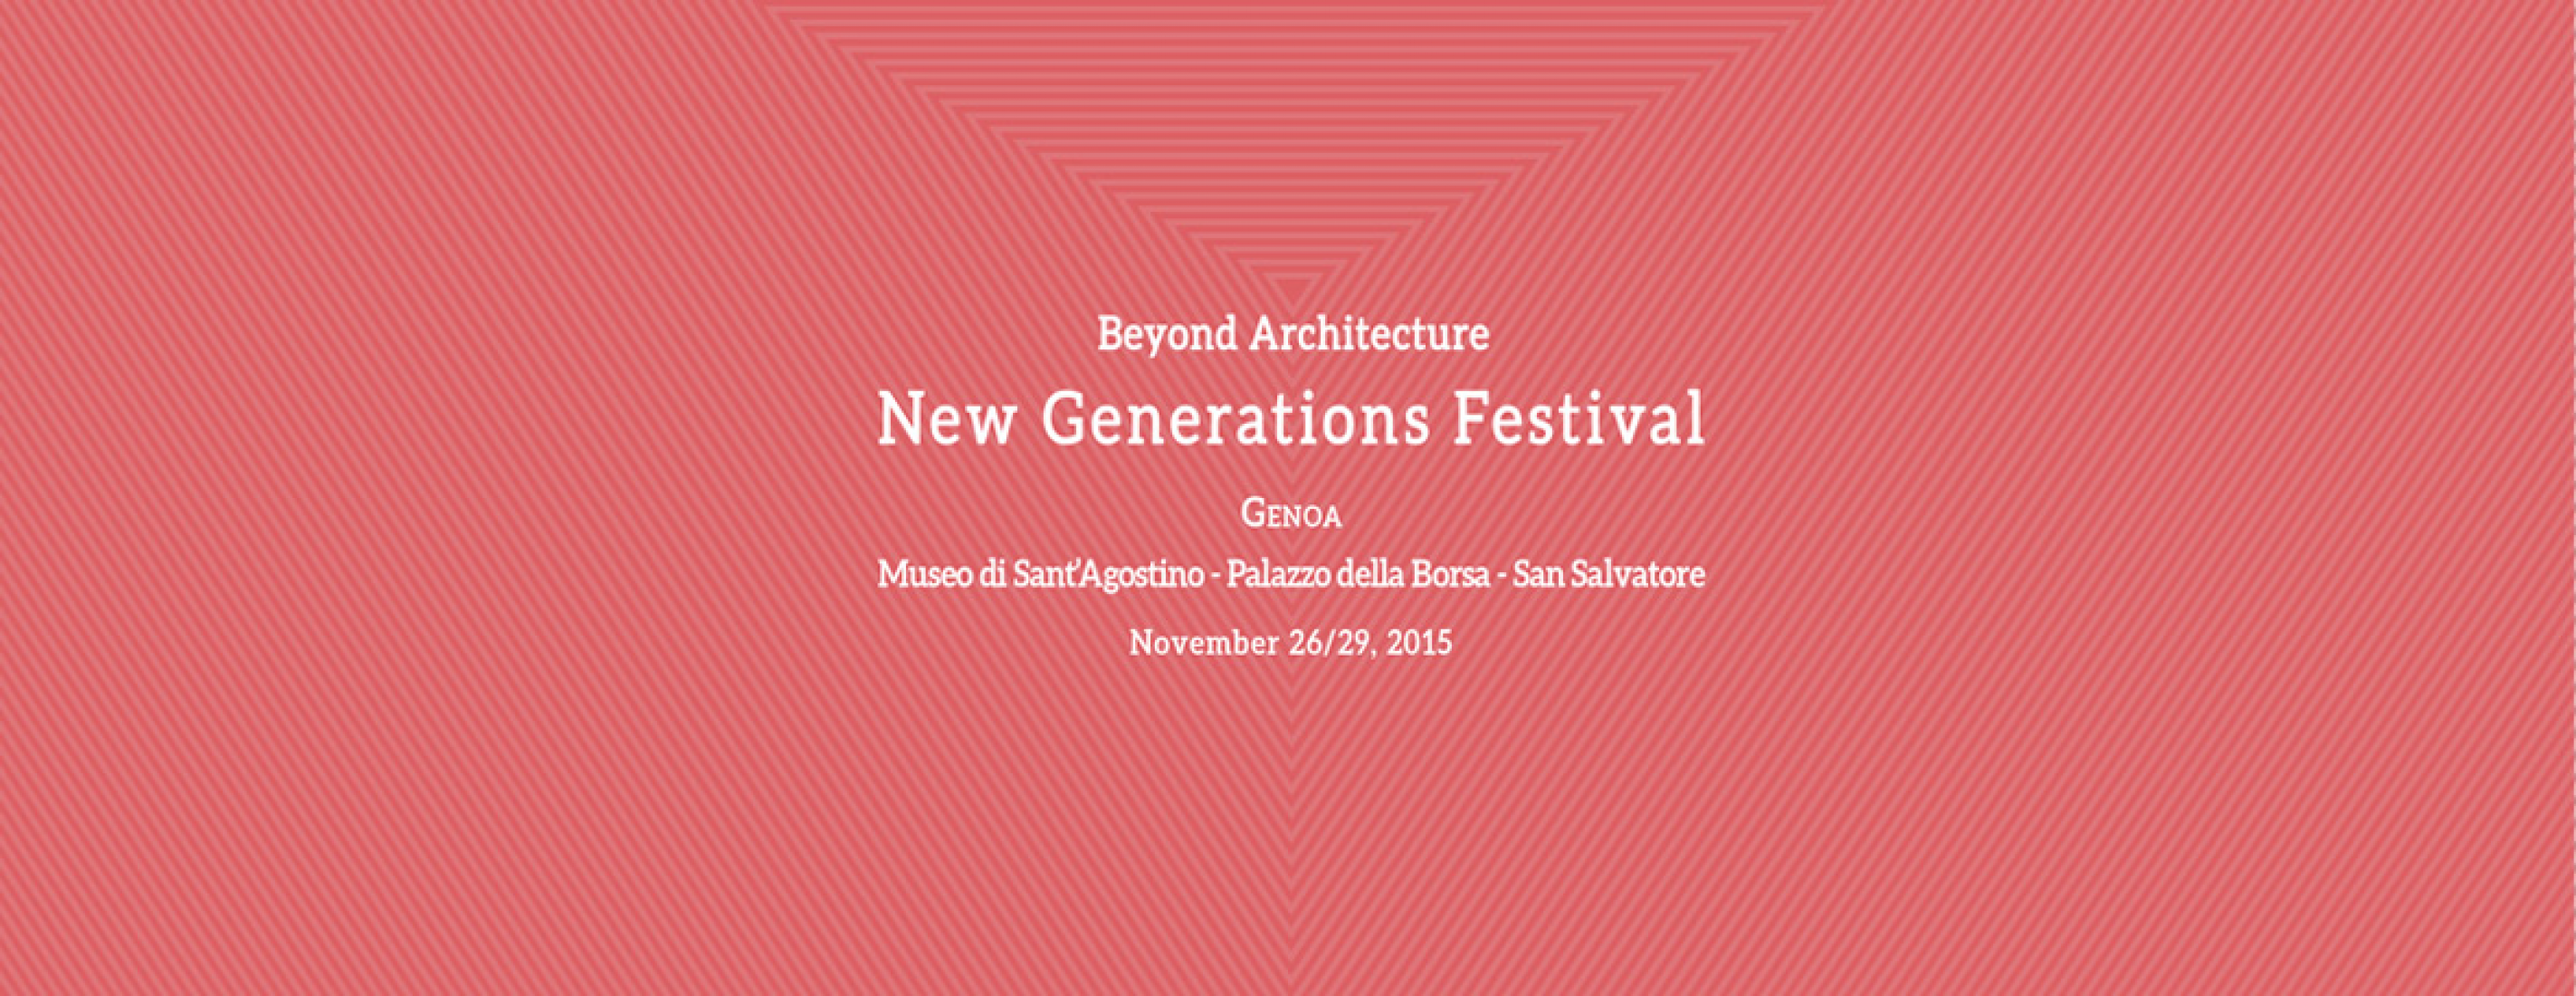 2015 New Generations Festival. Image courtesy of New Generations Festival.